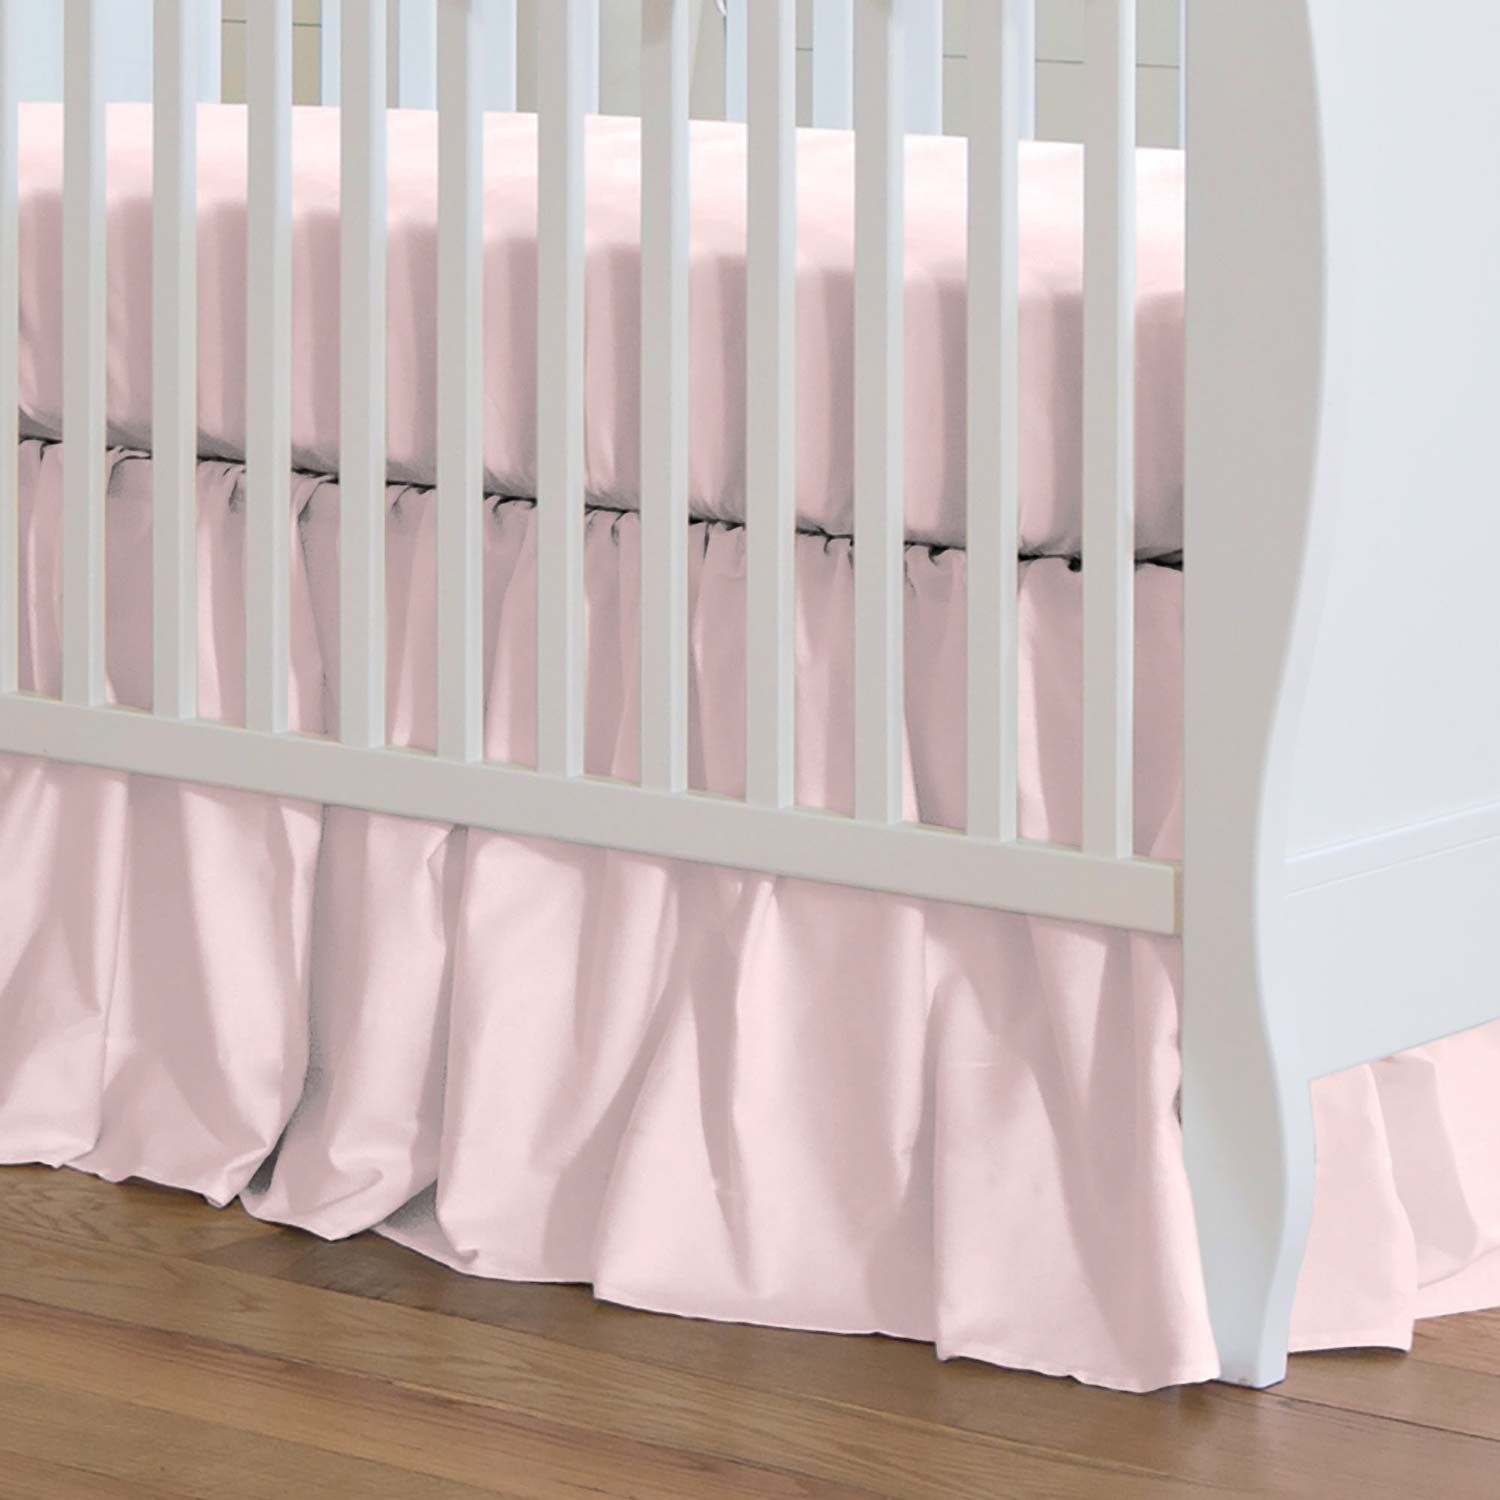 patchwork cribs four woodland magical set dreamlike your a wwh journey tiered forest on bedding piece little for dust ruffle the into includes quilt girl bsps takes whimsy crib